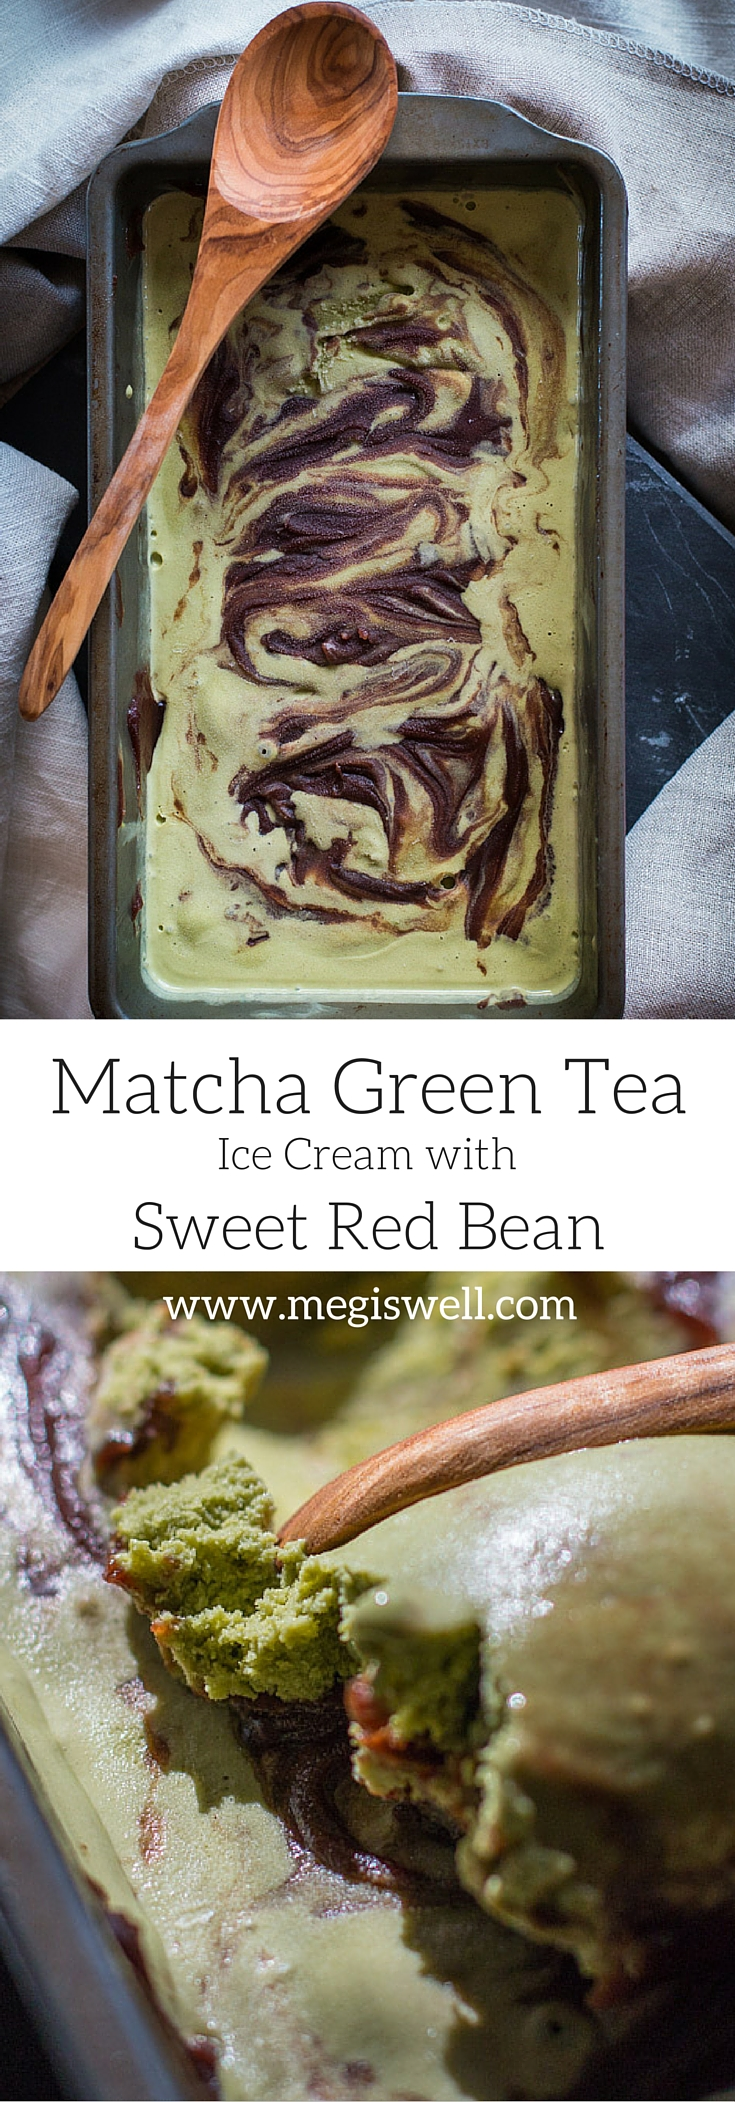 This Matcha Green Tea Ice Cream with Sweet Red Bean is creamy and soft with a definite bite of matcha tea that is tempered with the sweetness of the red bean paste.